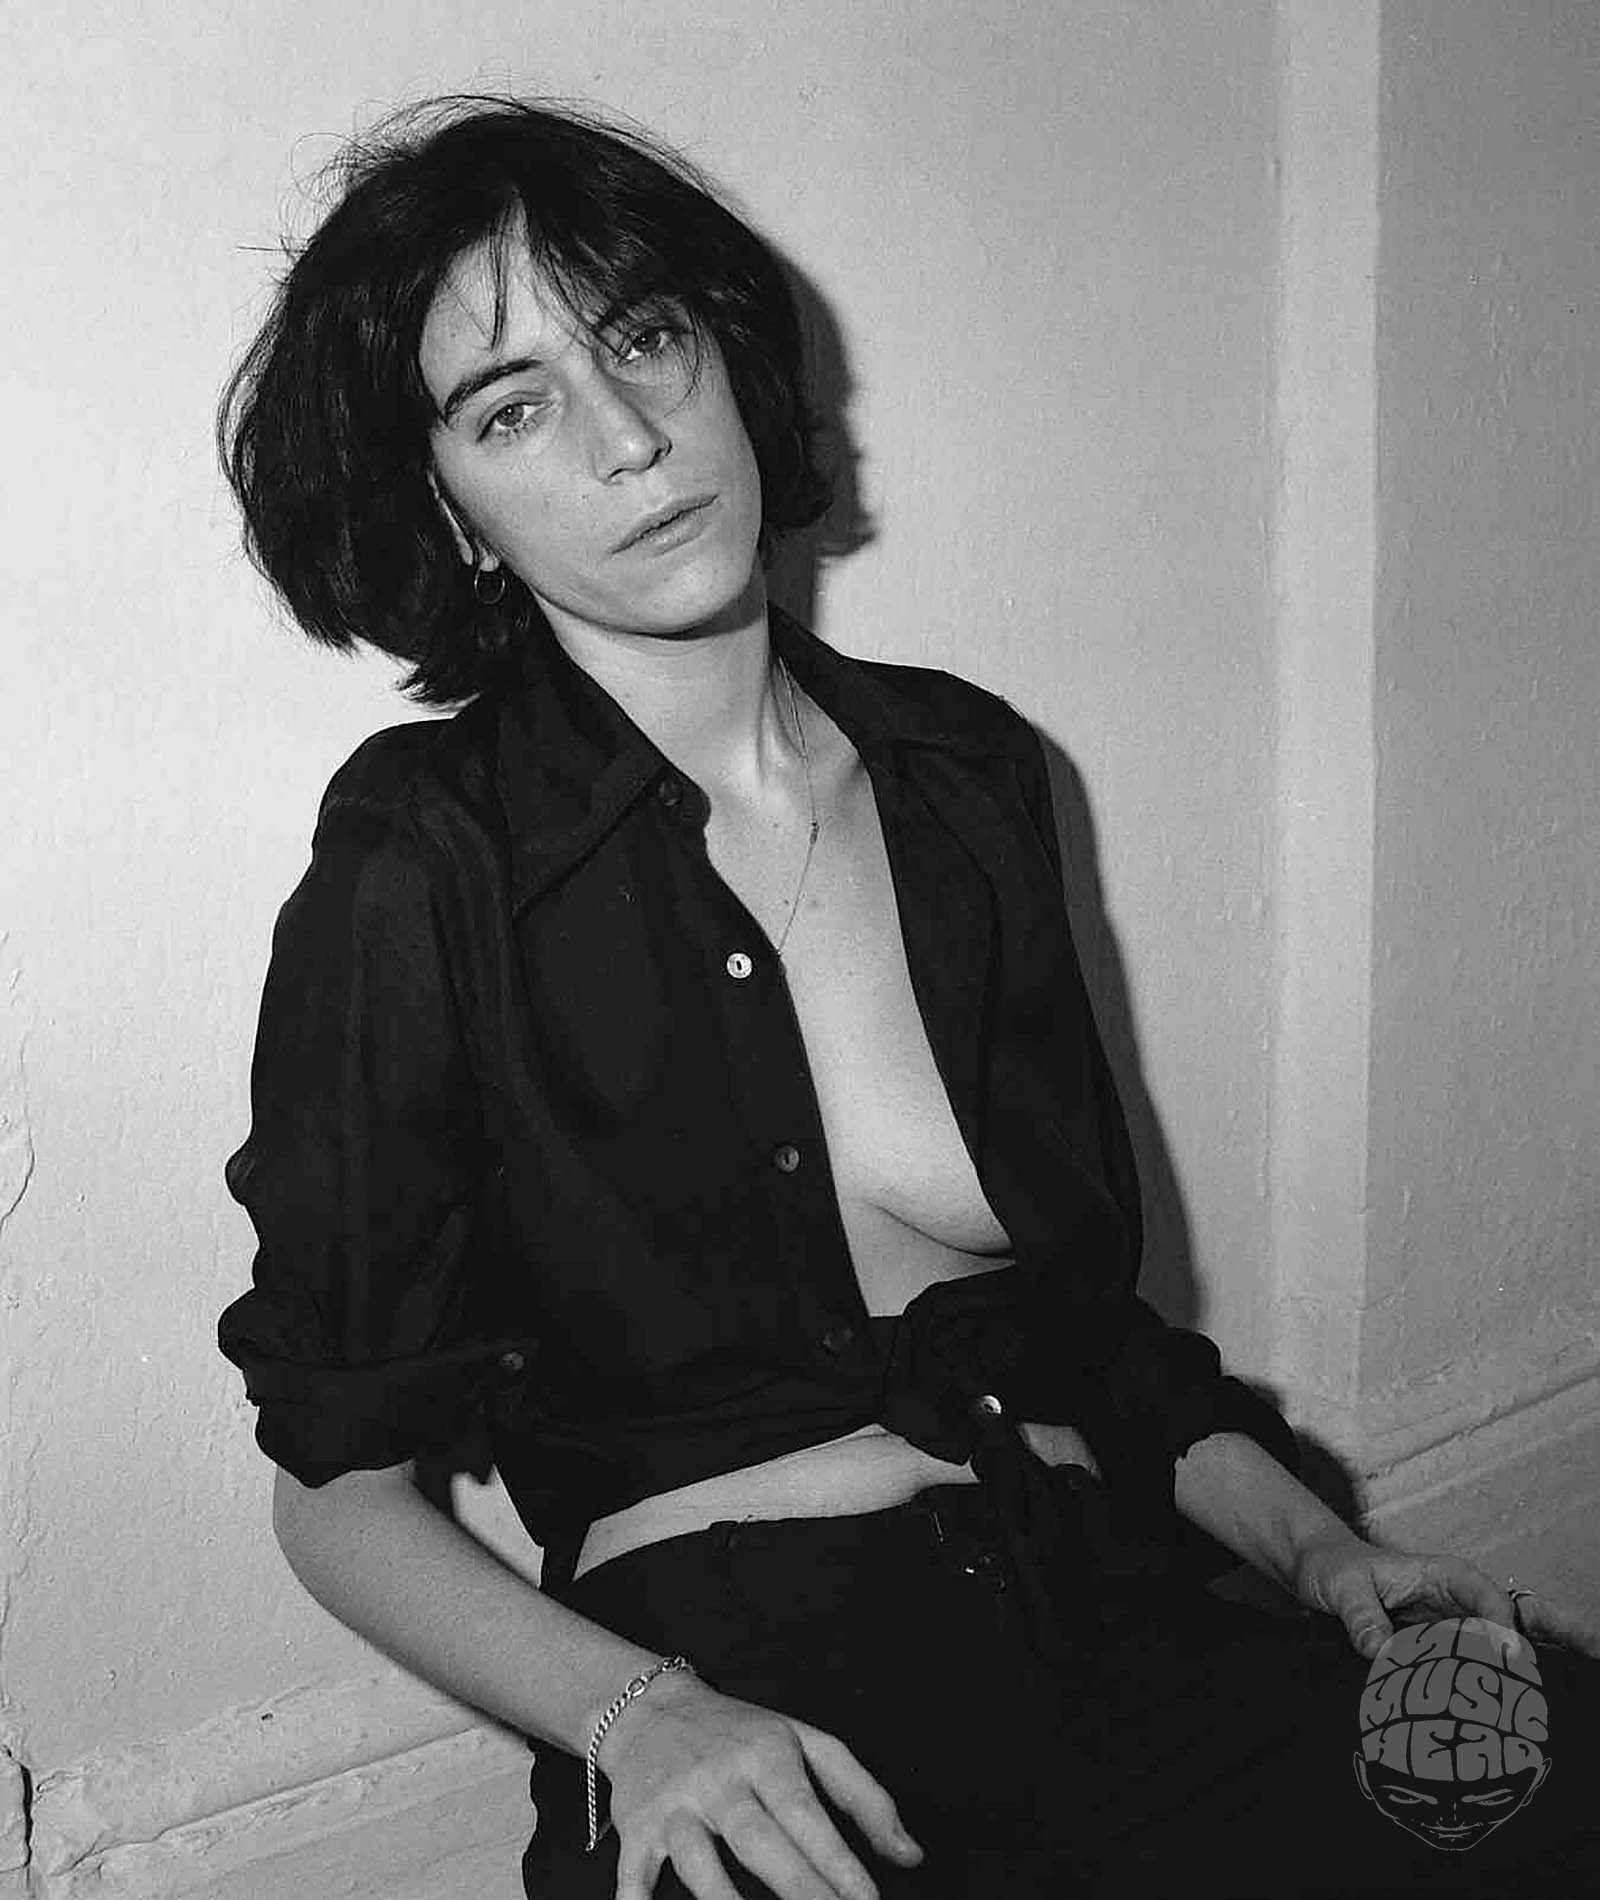 frank stefanko_Patti Smith_In Repose-2.jpg